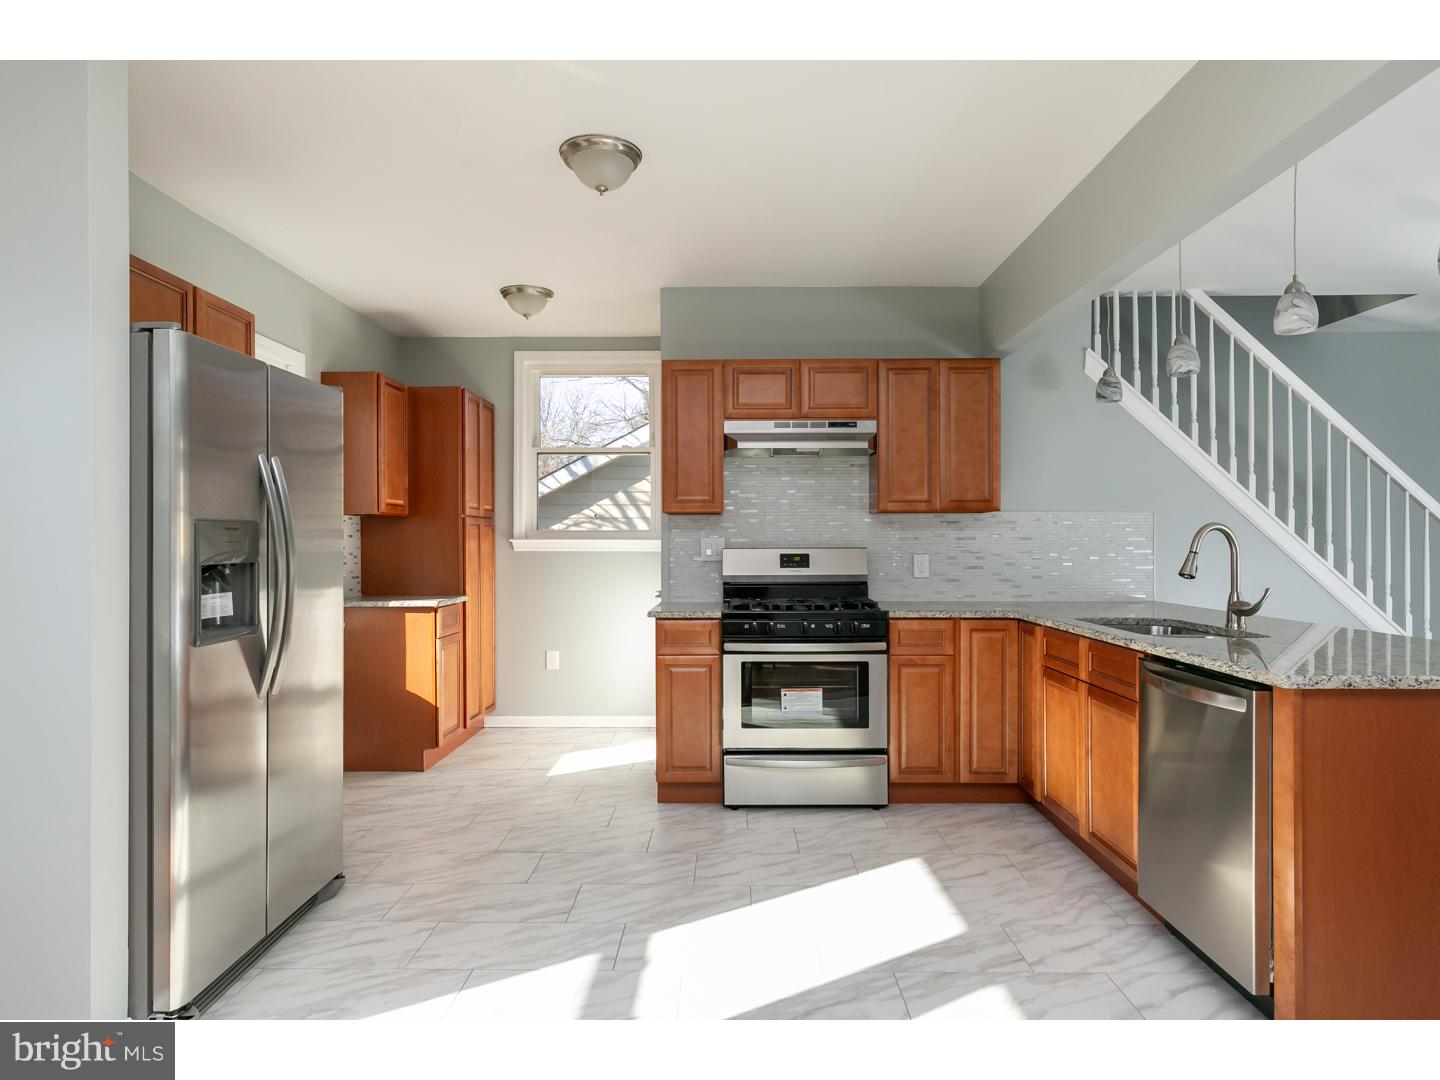 Single Family Home for Sale at 137 E NICHOLSON Road Audubon, New Jersey 08106 United States